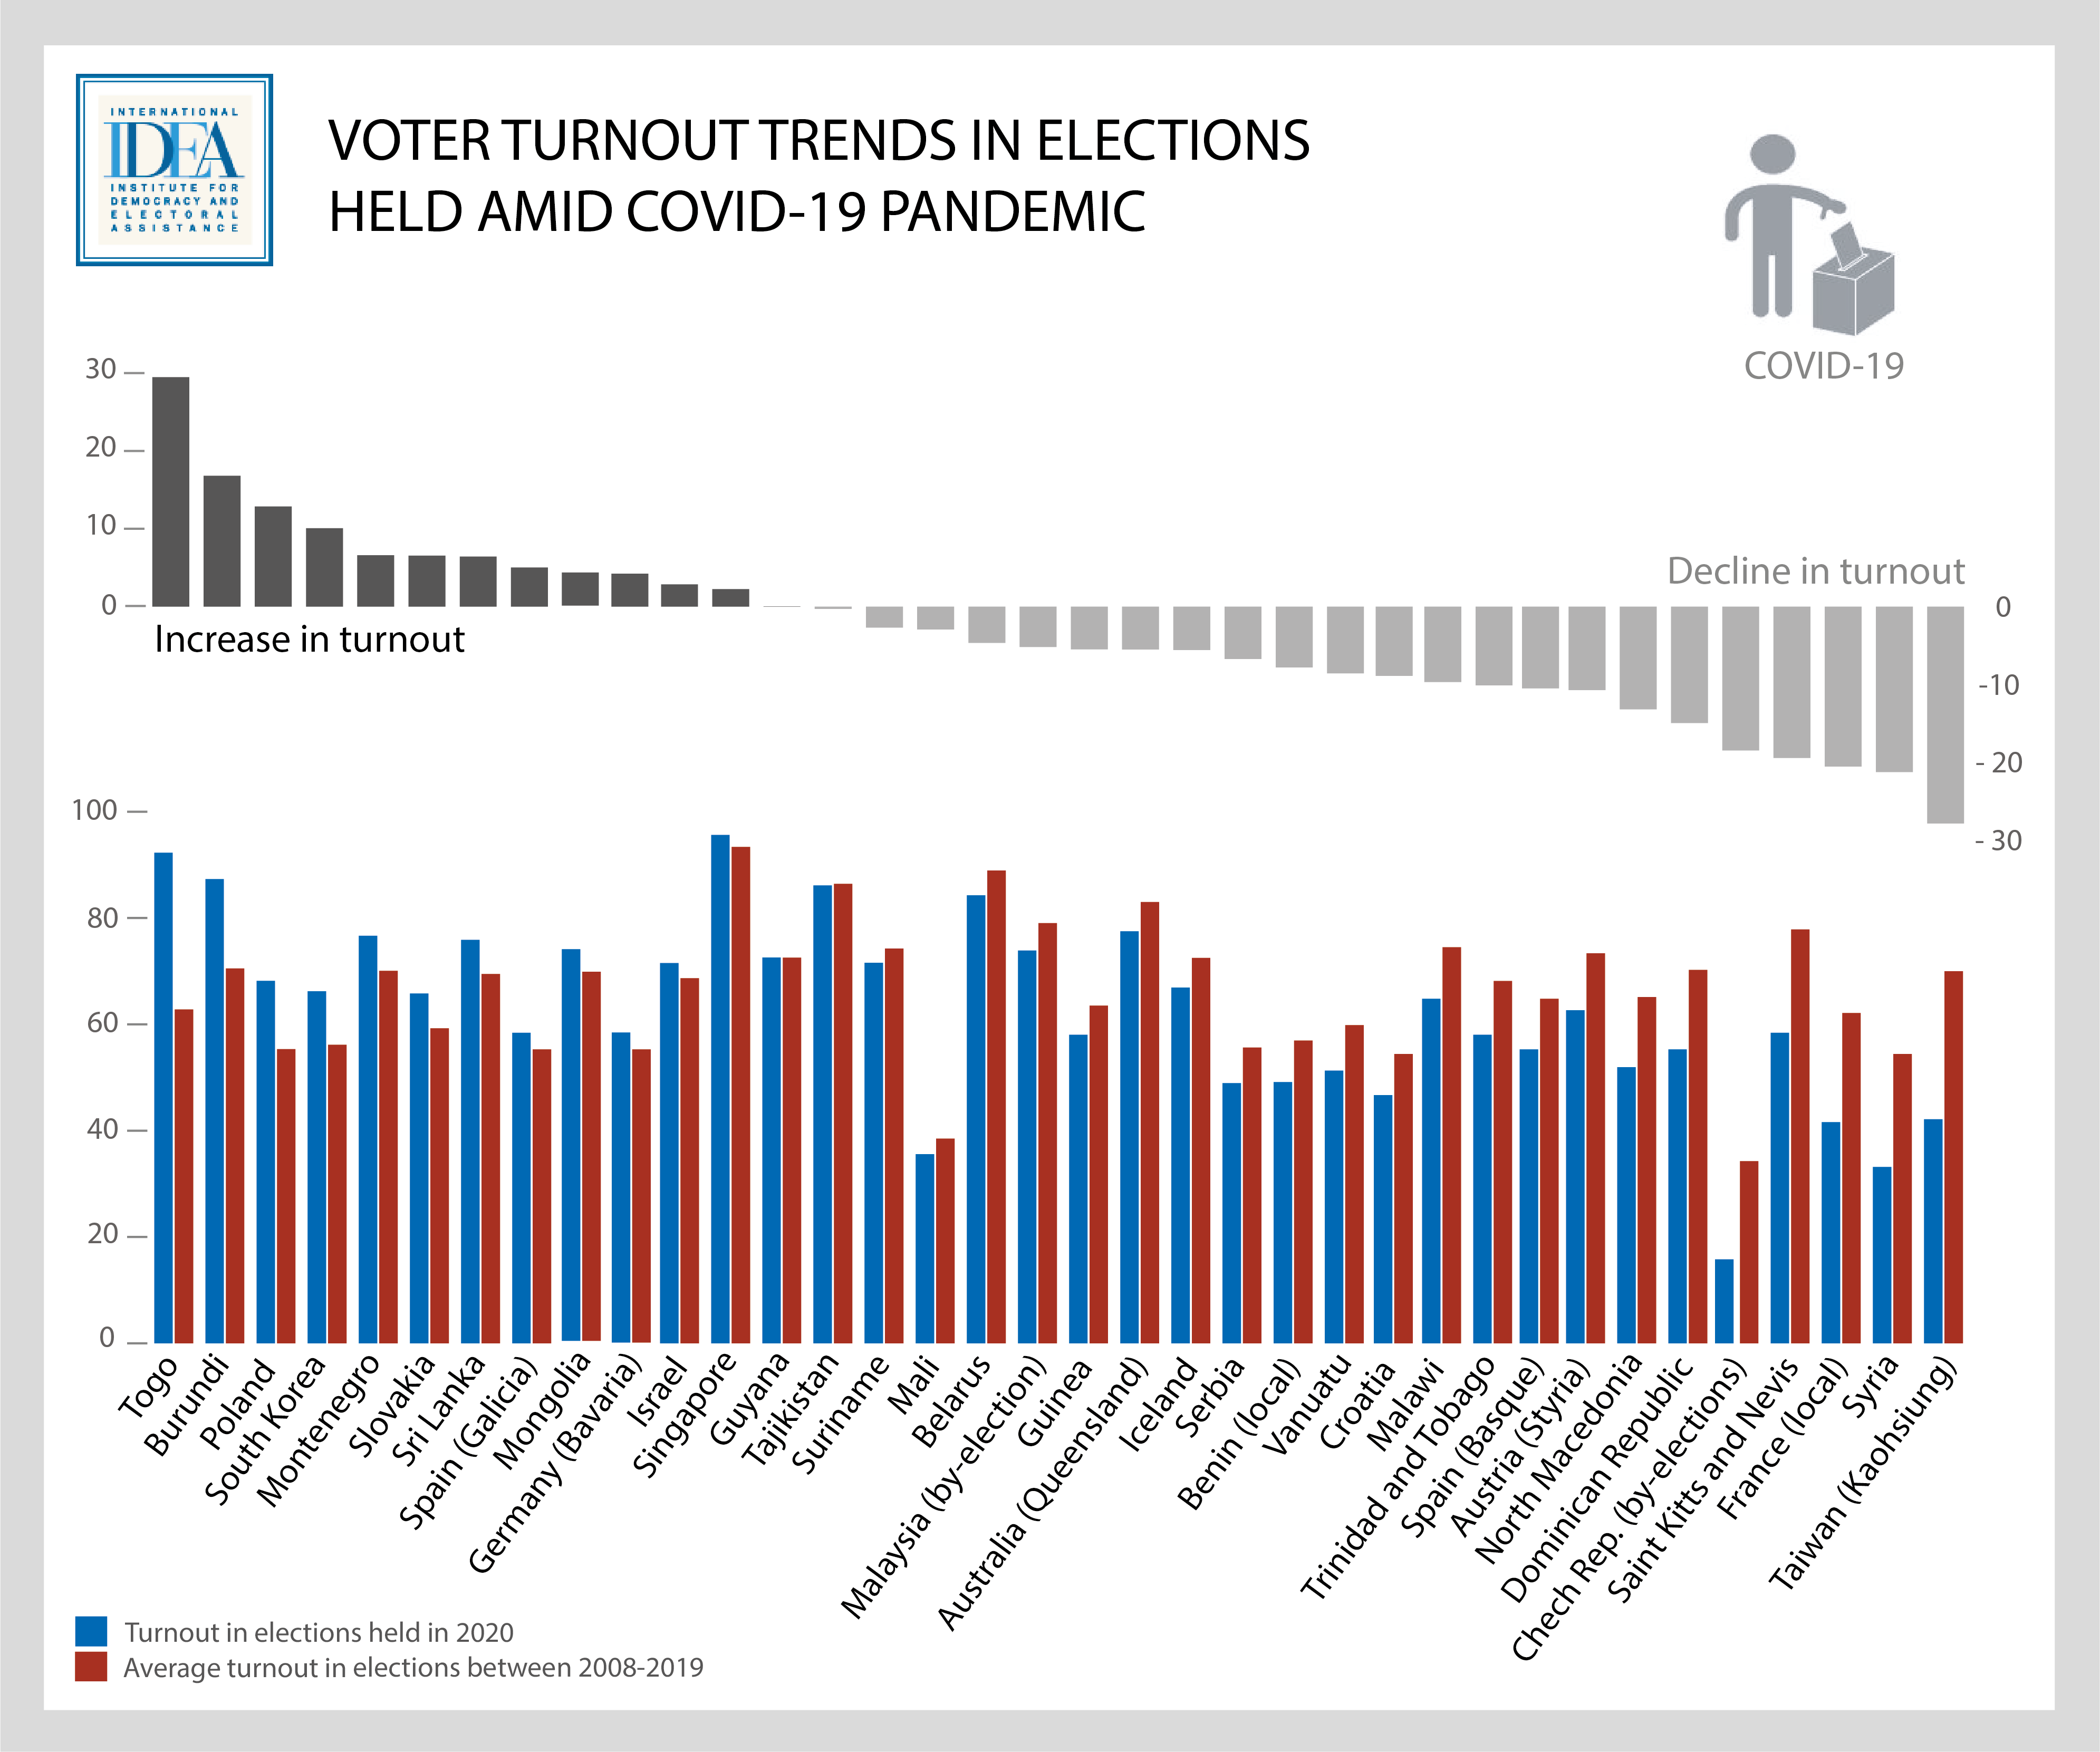 Figure 1:  While most of the countries and territories that held elections amid the COVID-19 have seen a decline in turnout, there has been a number of countries and territories where the turnout increased. Image credit: International IDEA.